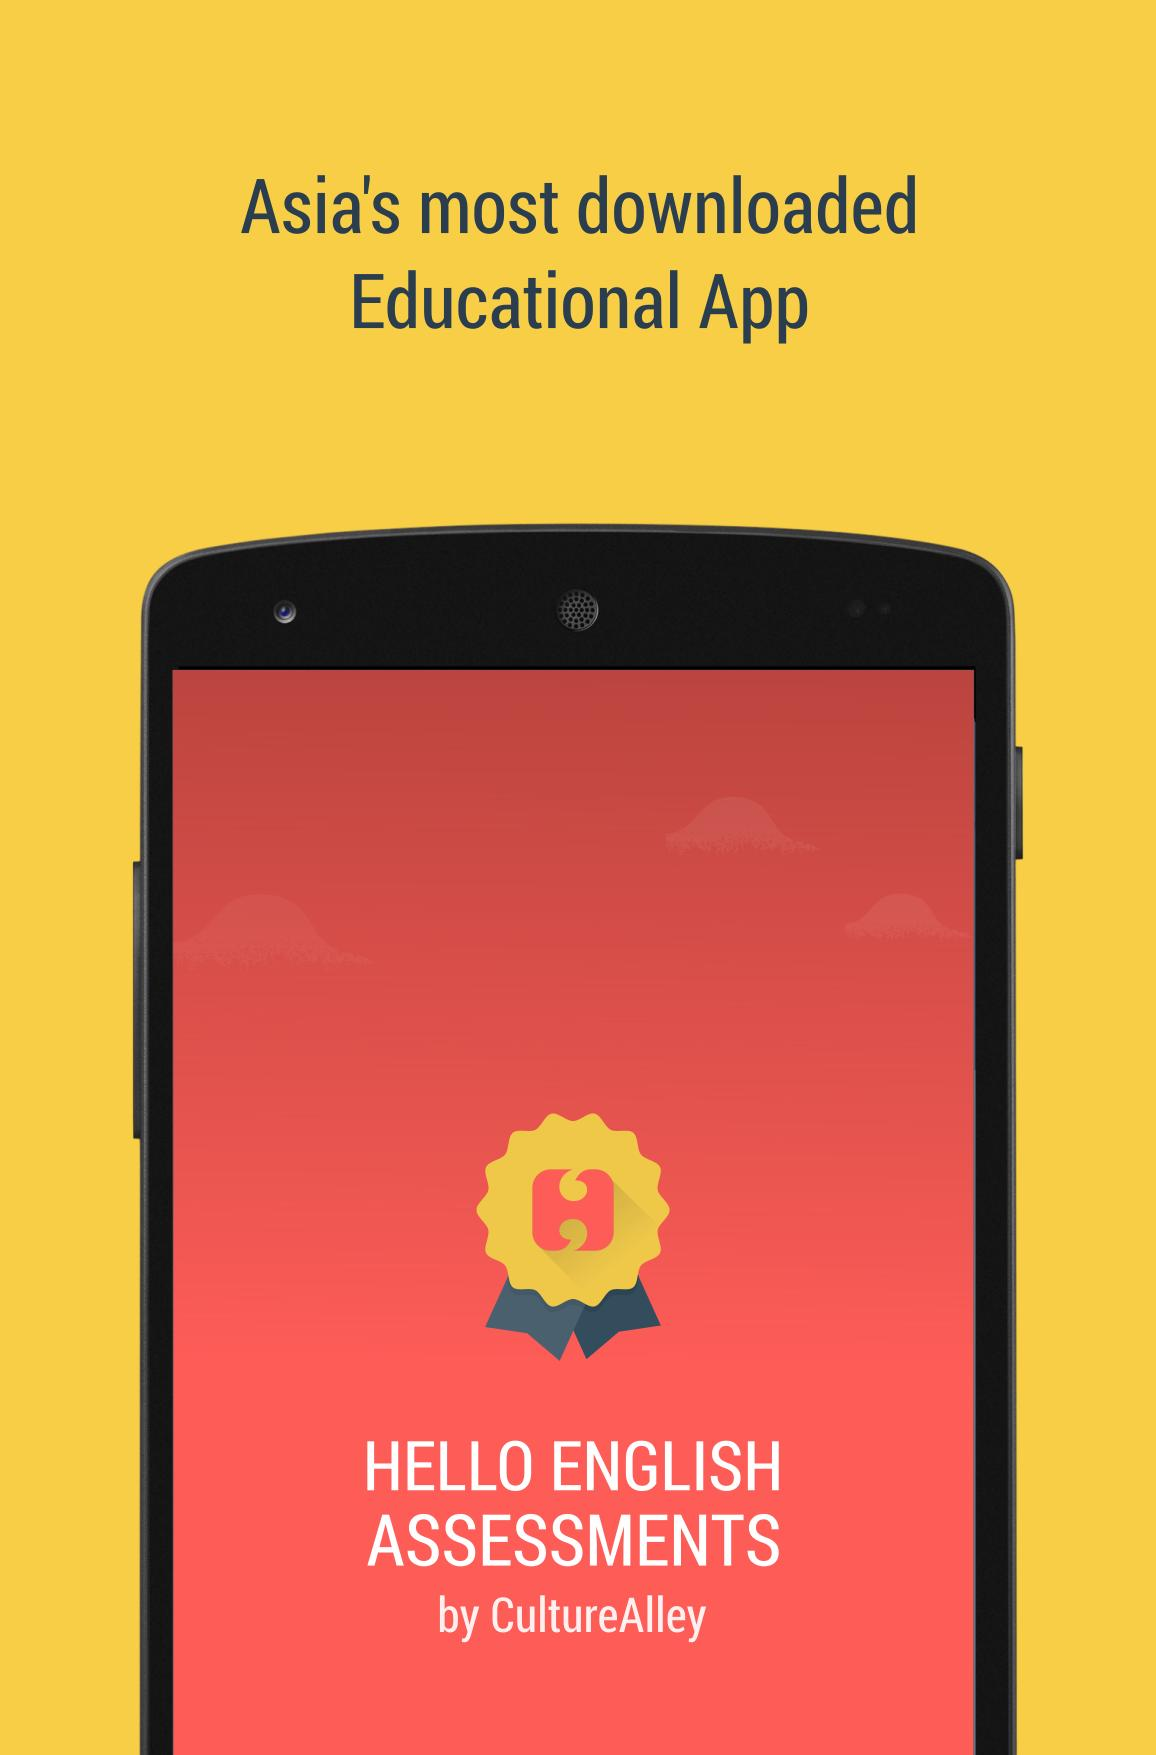 Hello English Assessments for Android - APK Download